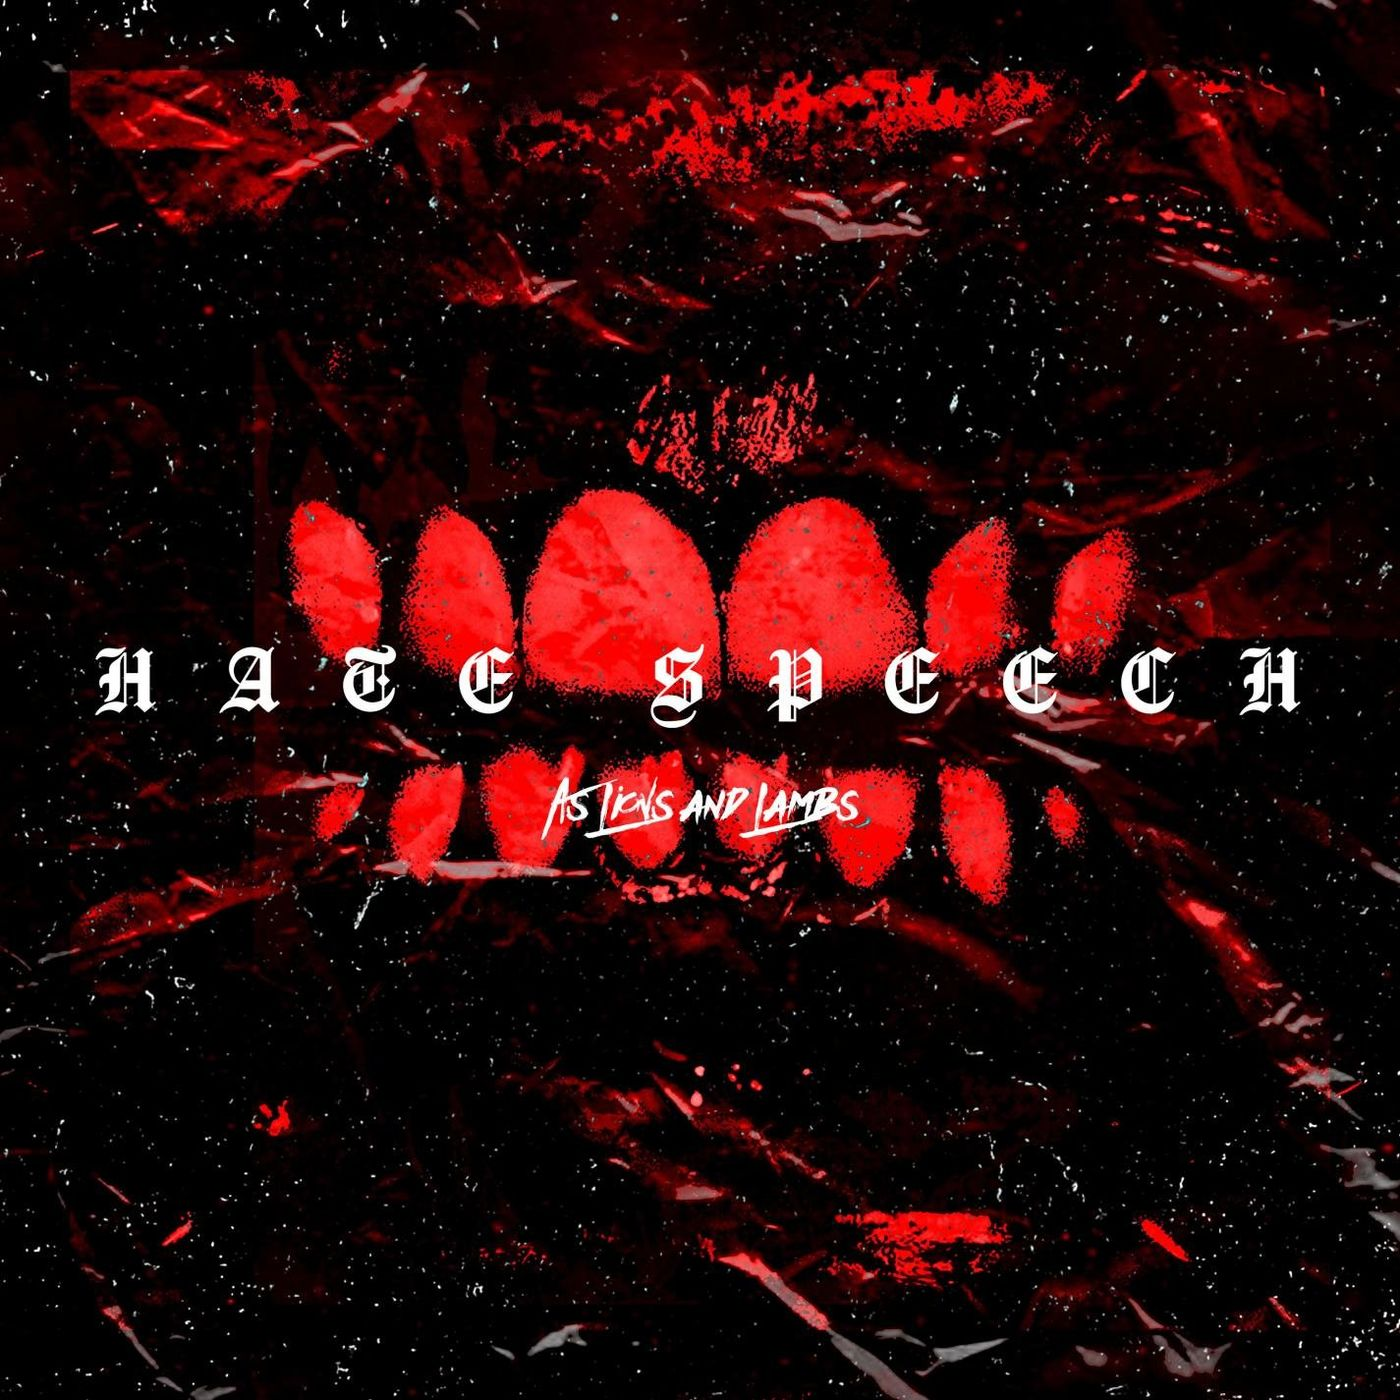 As Lions And Lambs - Hate Speech [single] (2020)